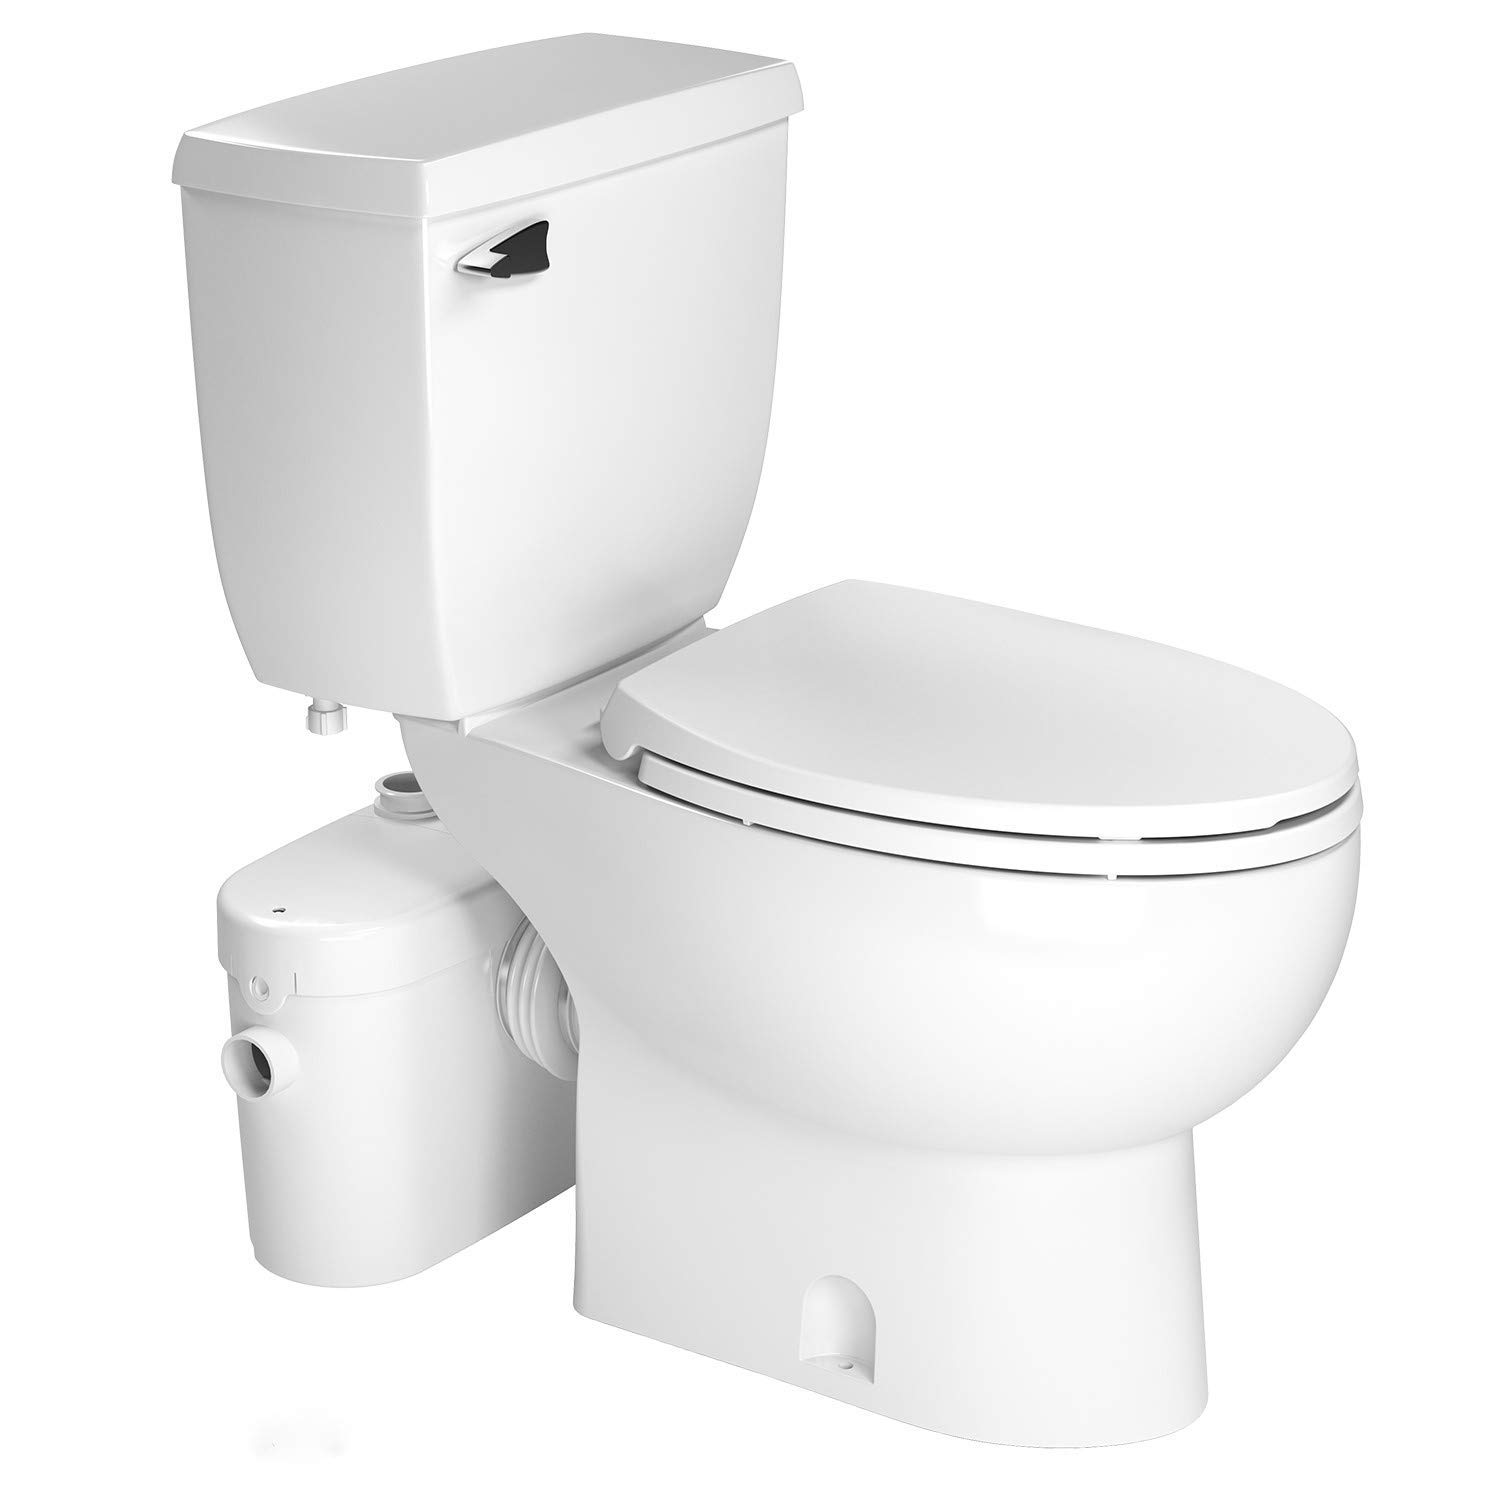 Top 4 Best Saniflo Toilets Reviews in 2020 2